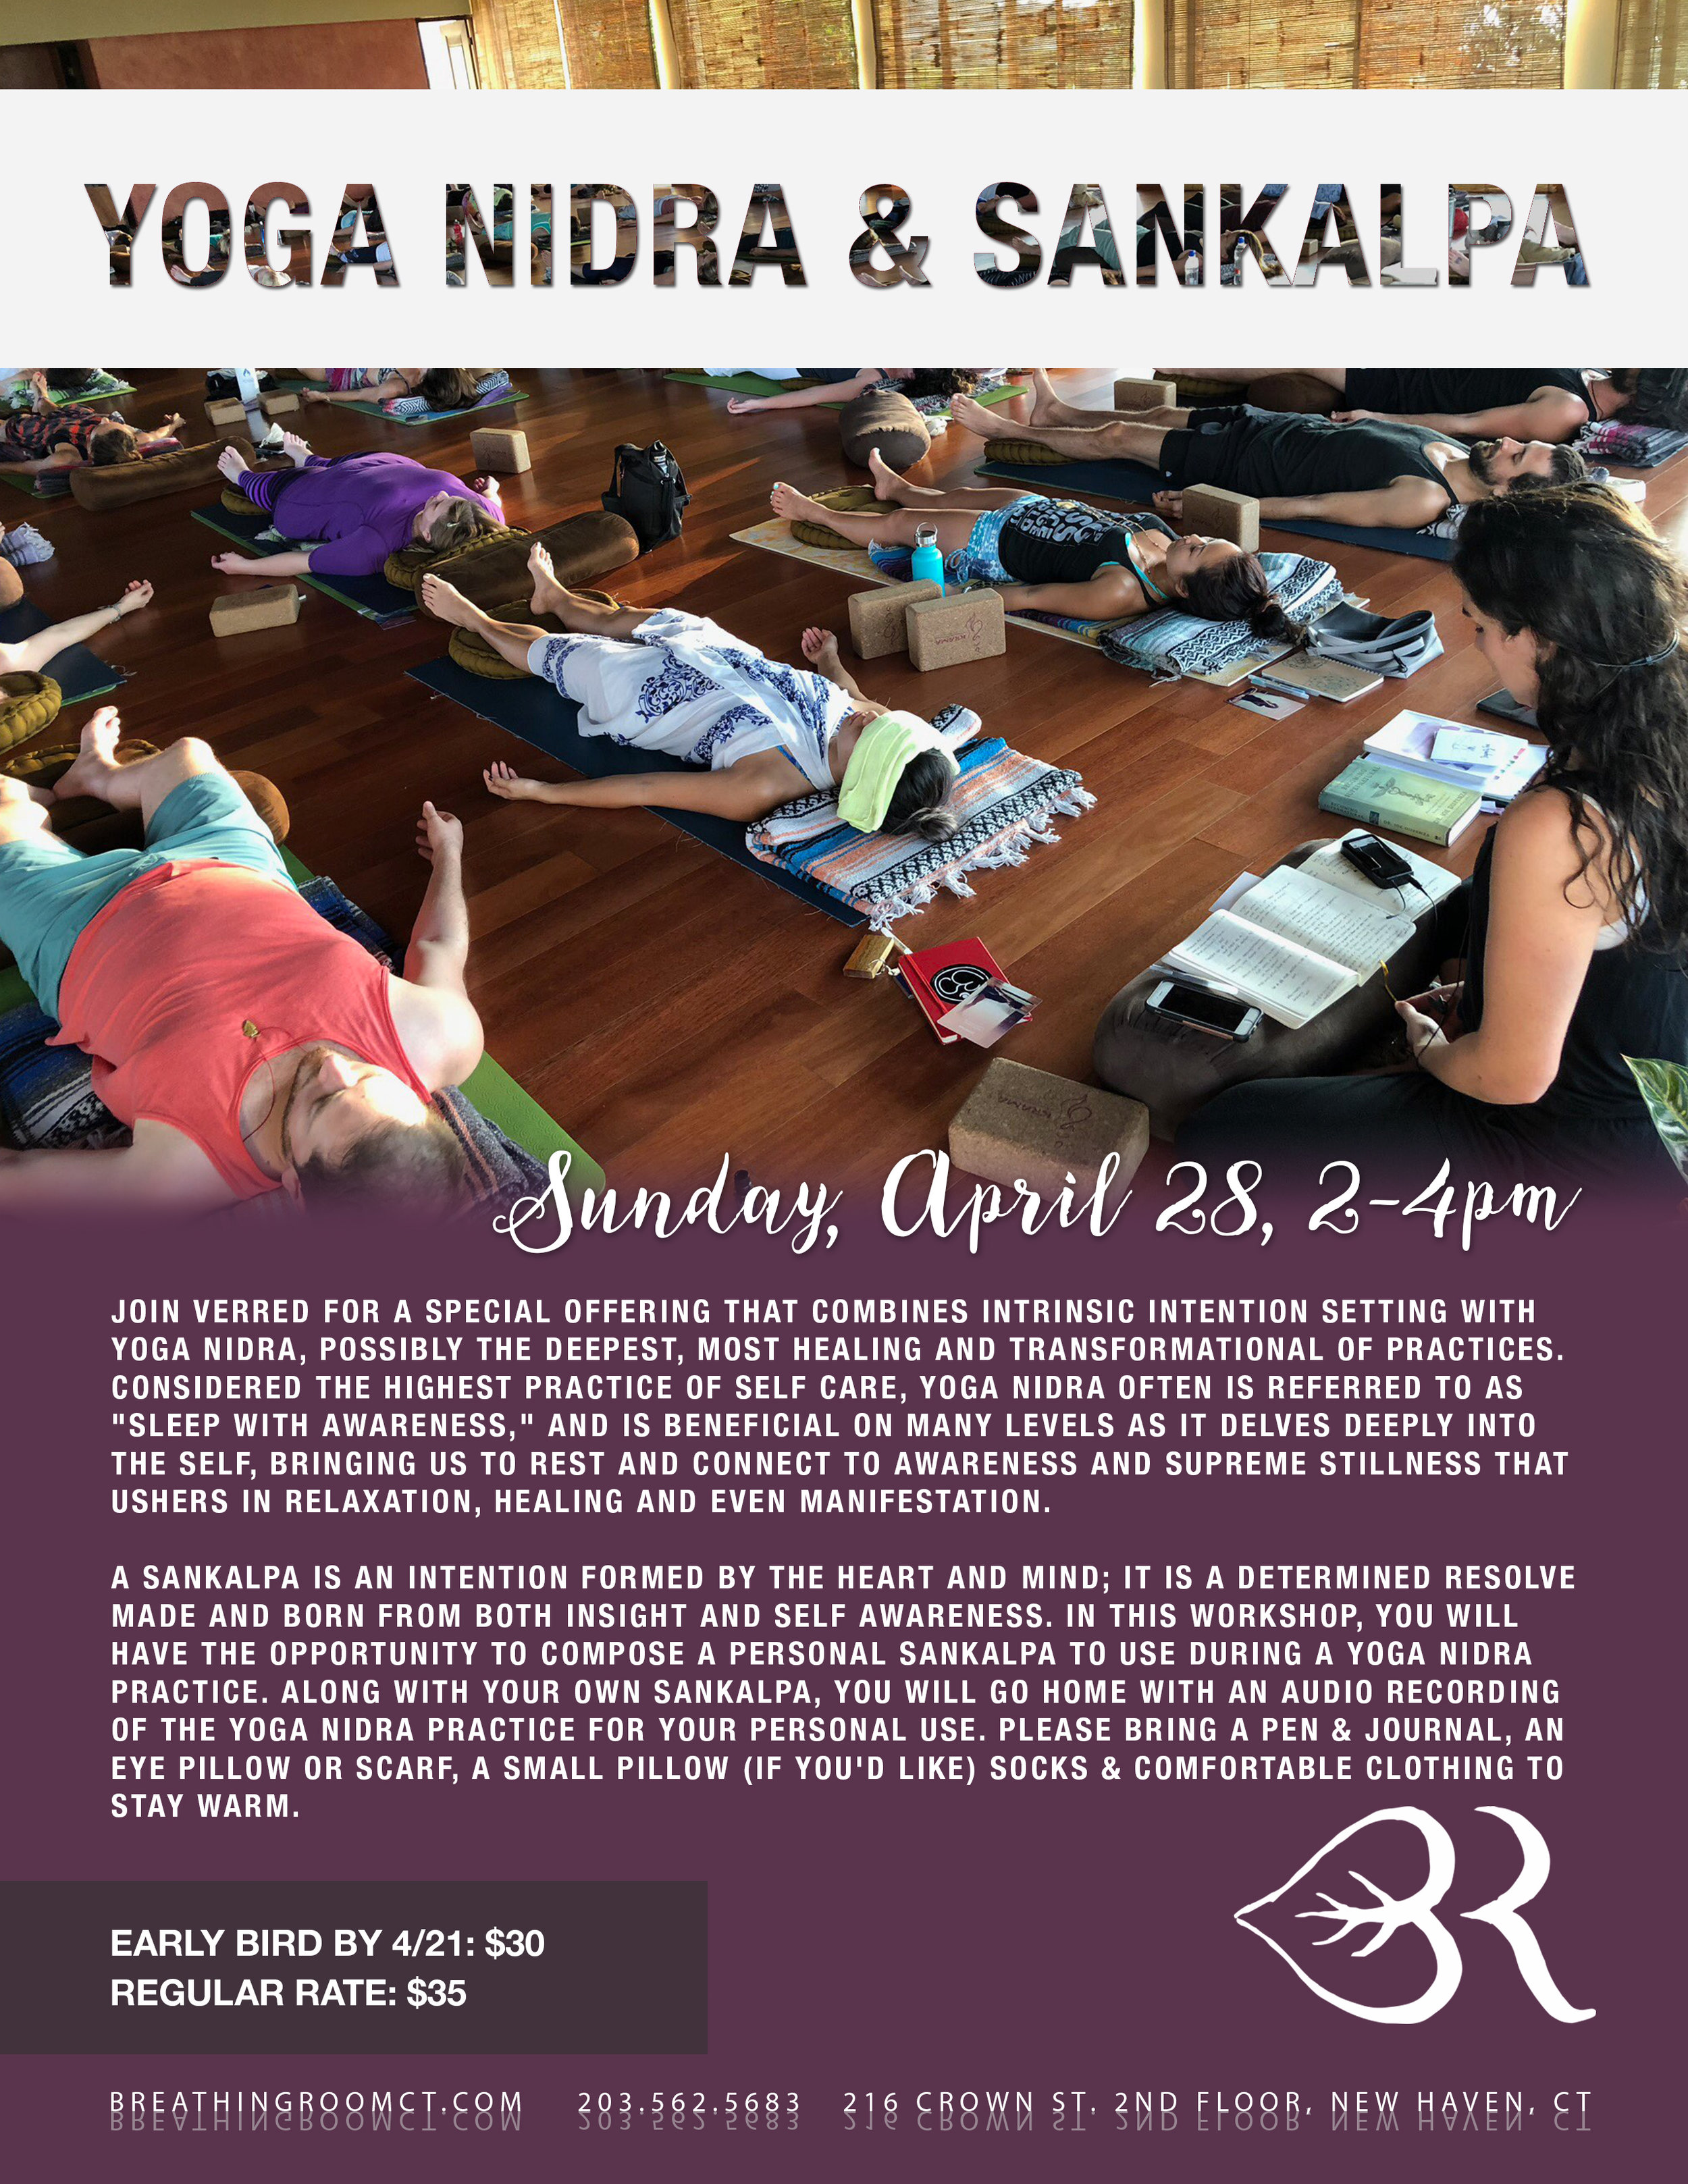 Yoga Nidra & Sankalpa - Join me on Sunday, April 28th at 2pm for a special offering that combines intrinsic intention setting with Yoga Nidra.